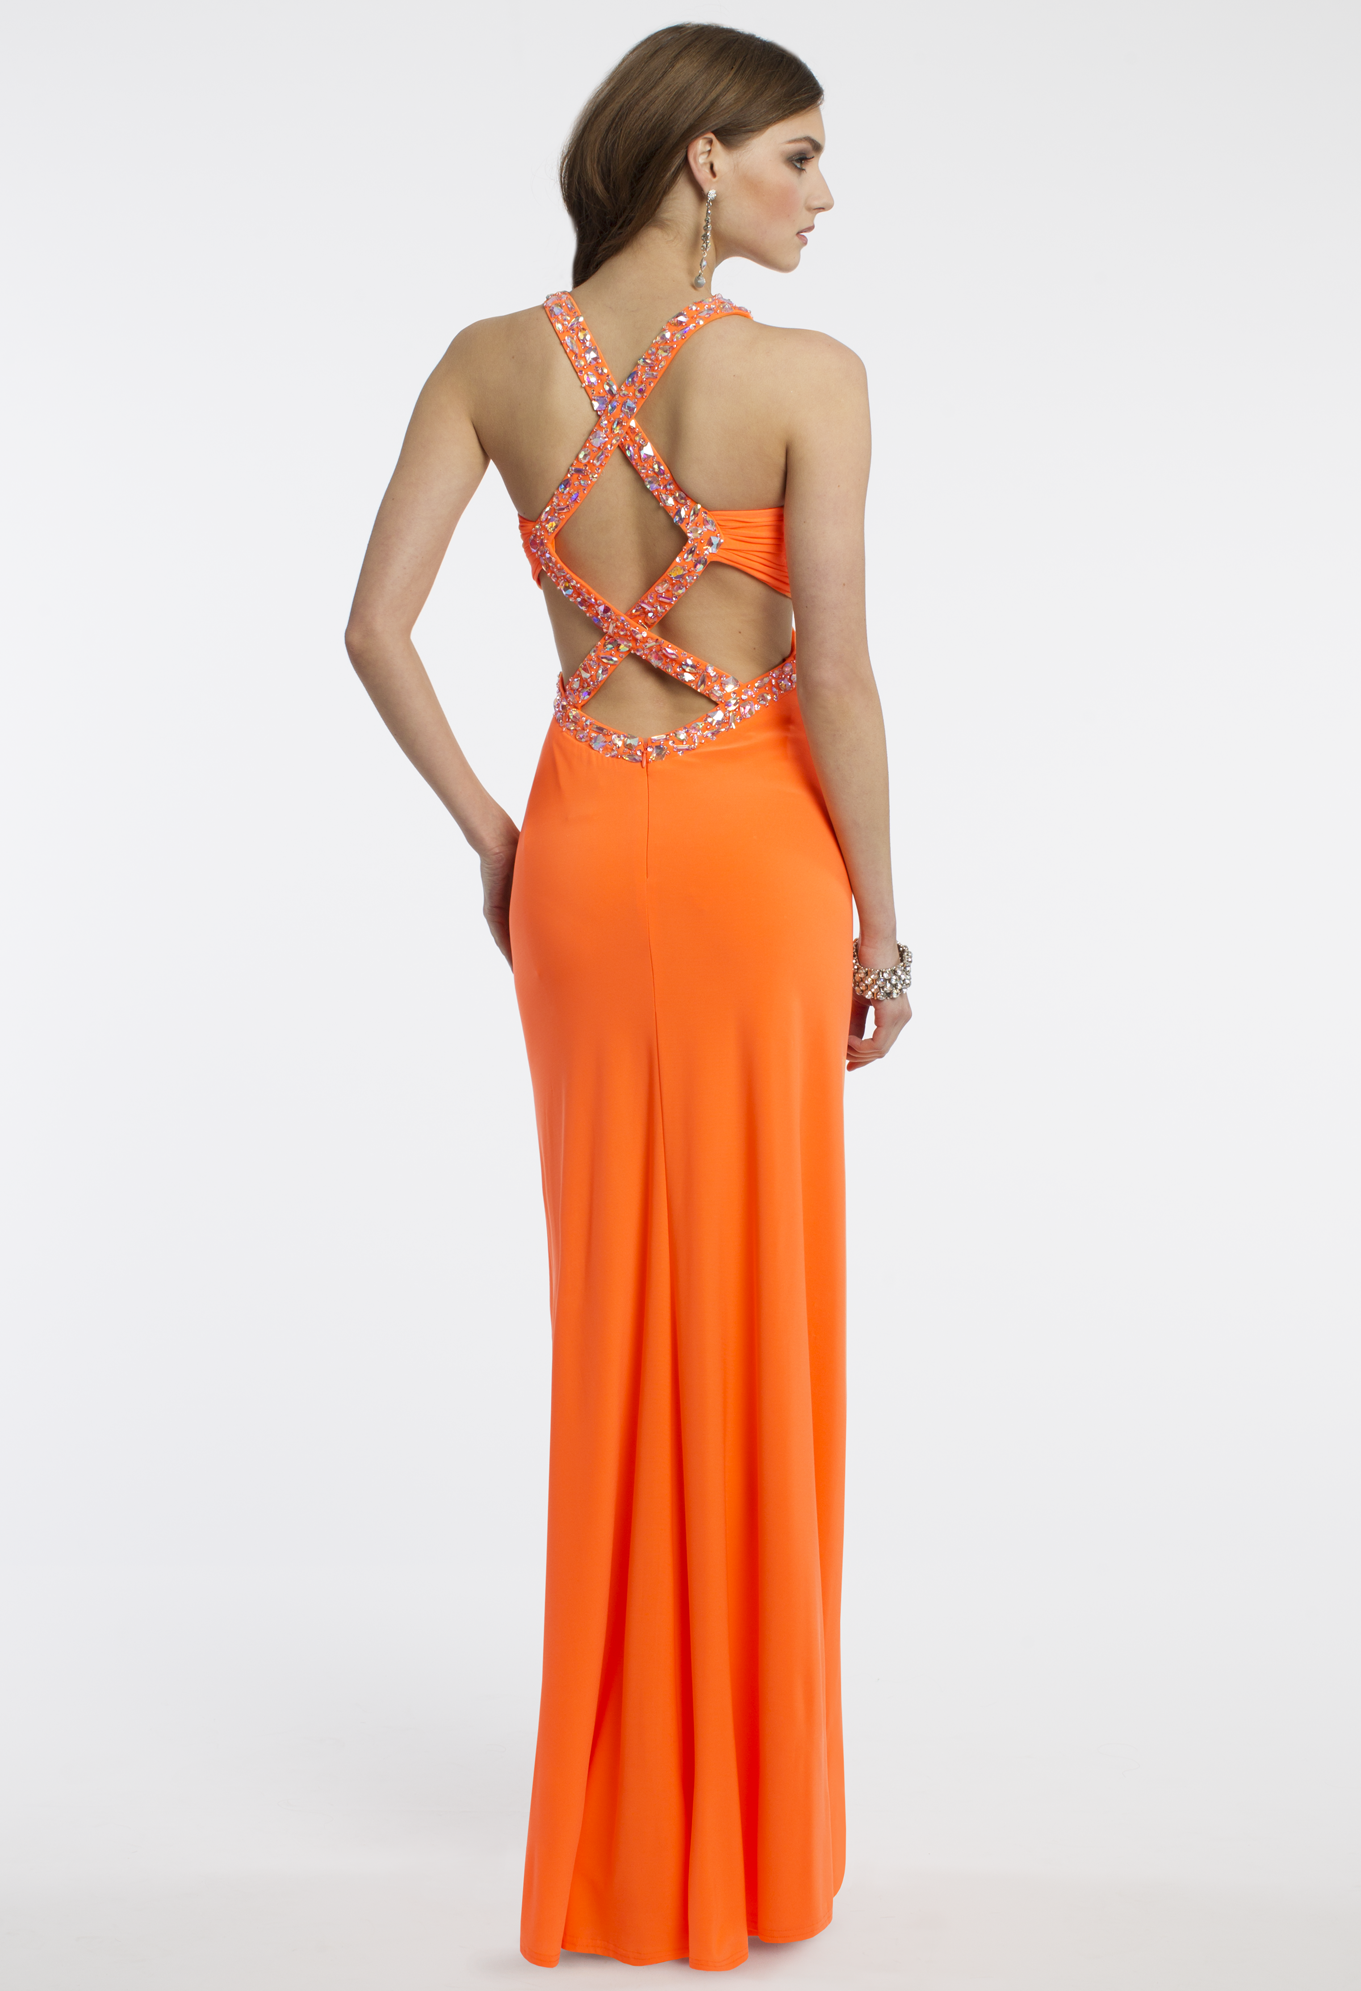 Neon Orange Homecoming Dress! Loving the side cutouts with ...